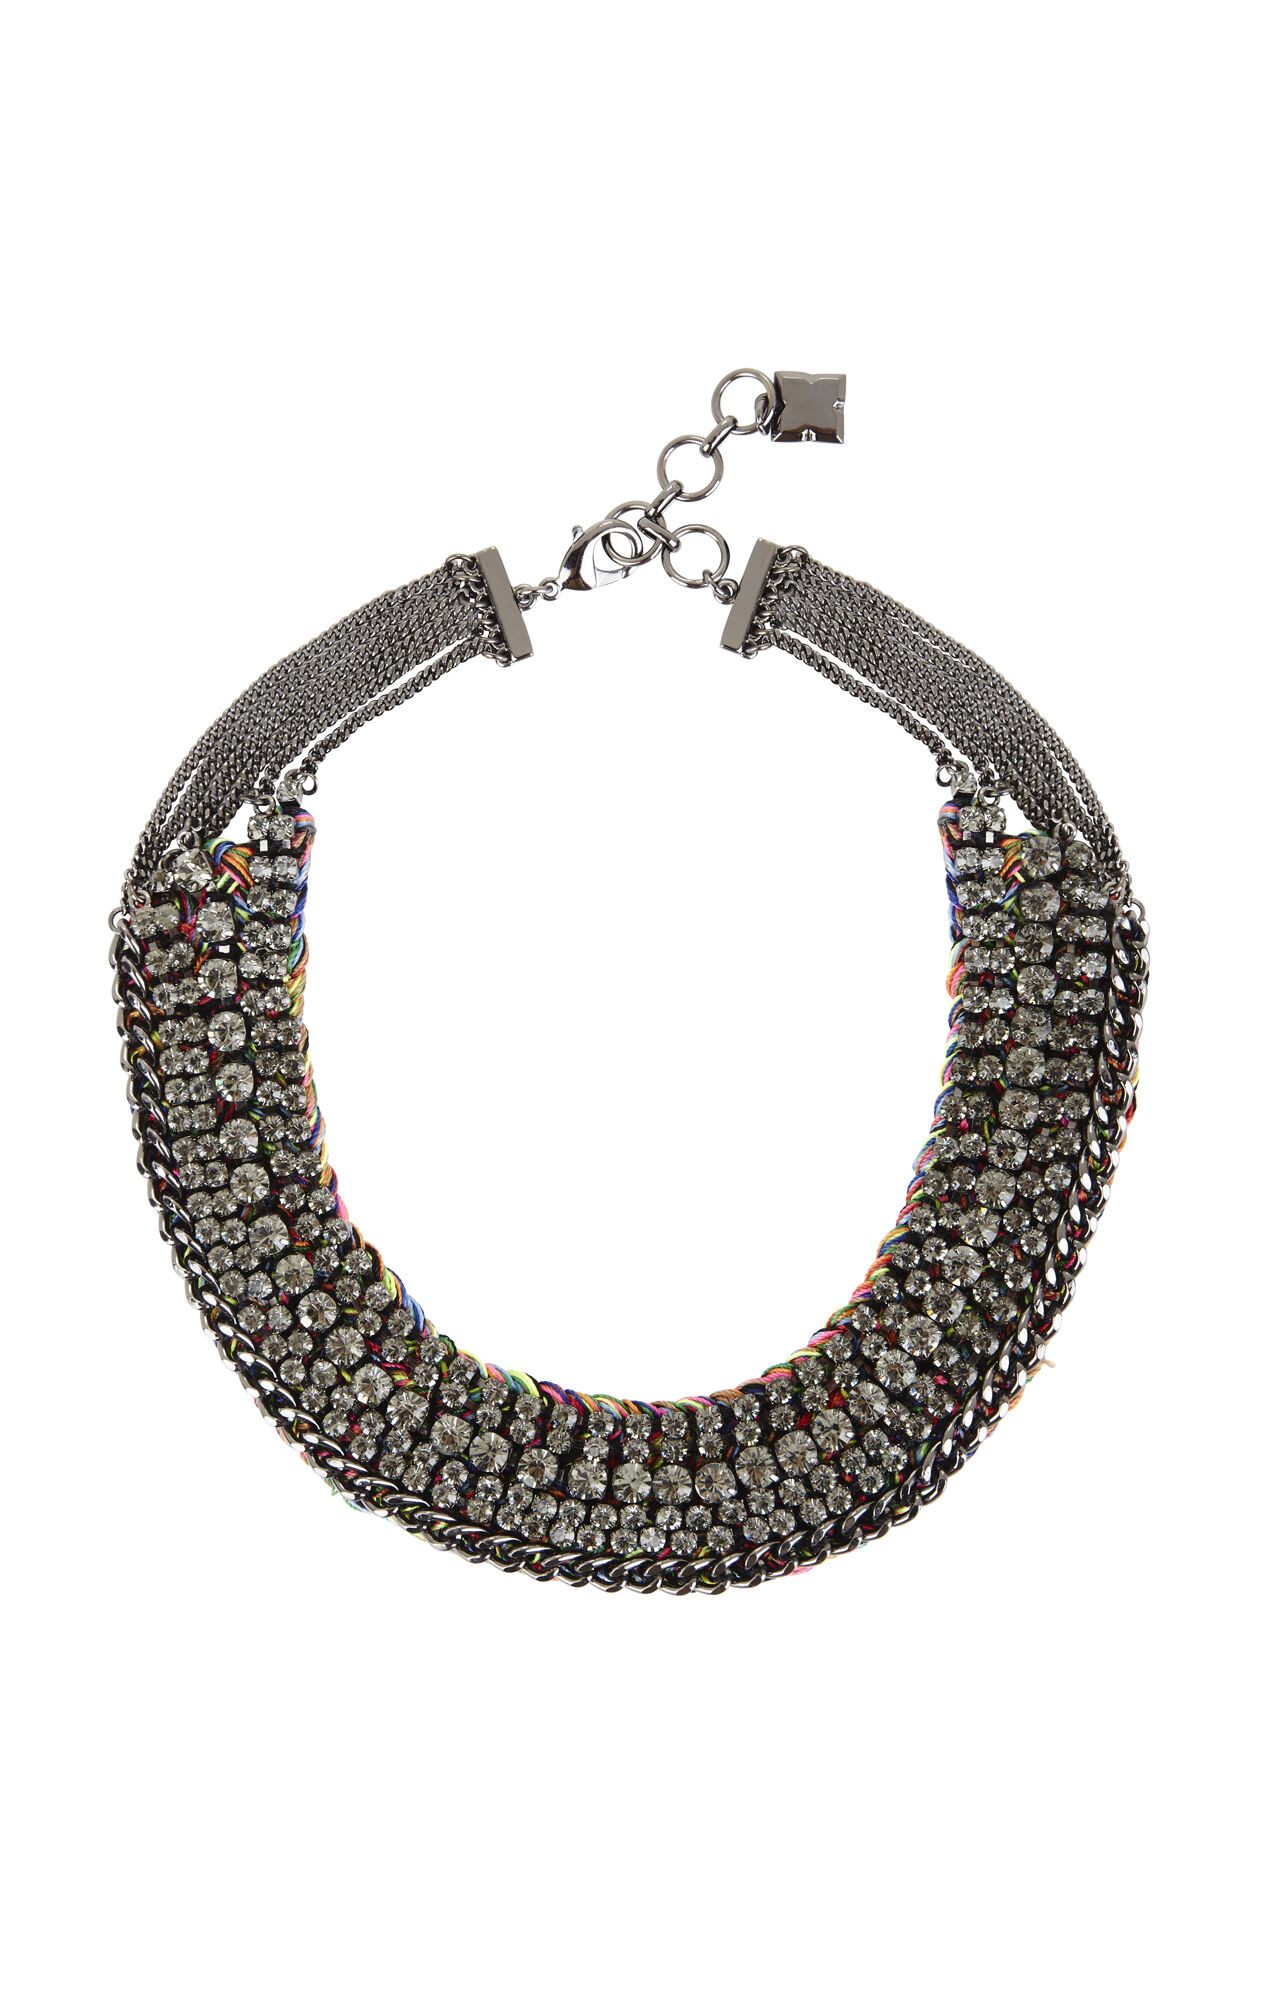 Stone and Thread Collar Necklace